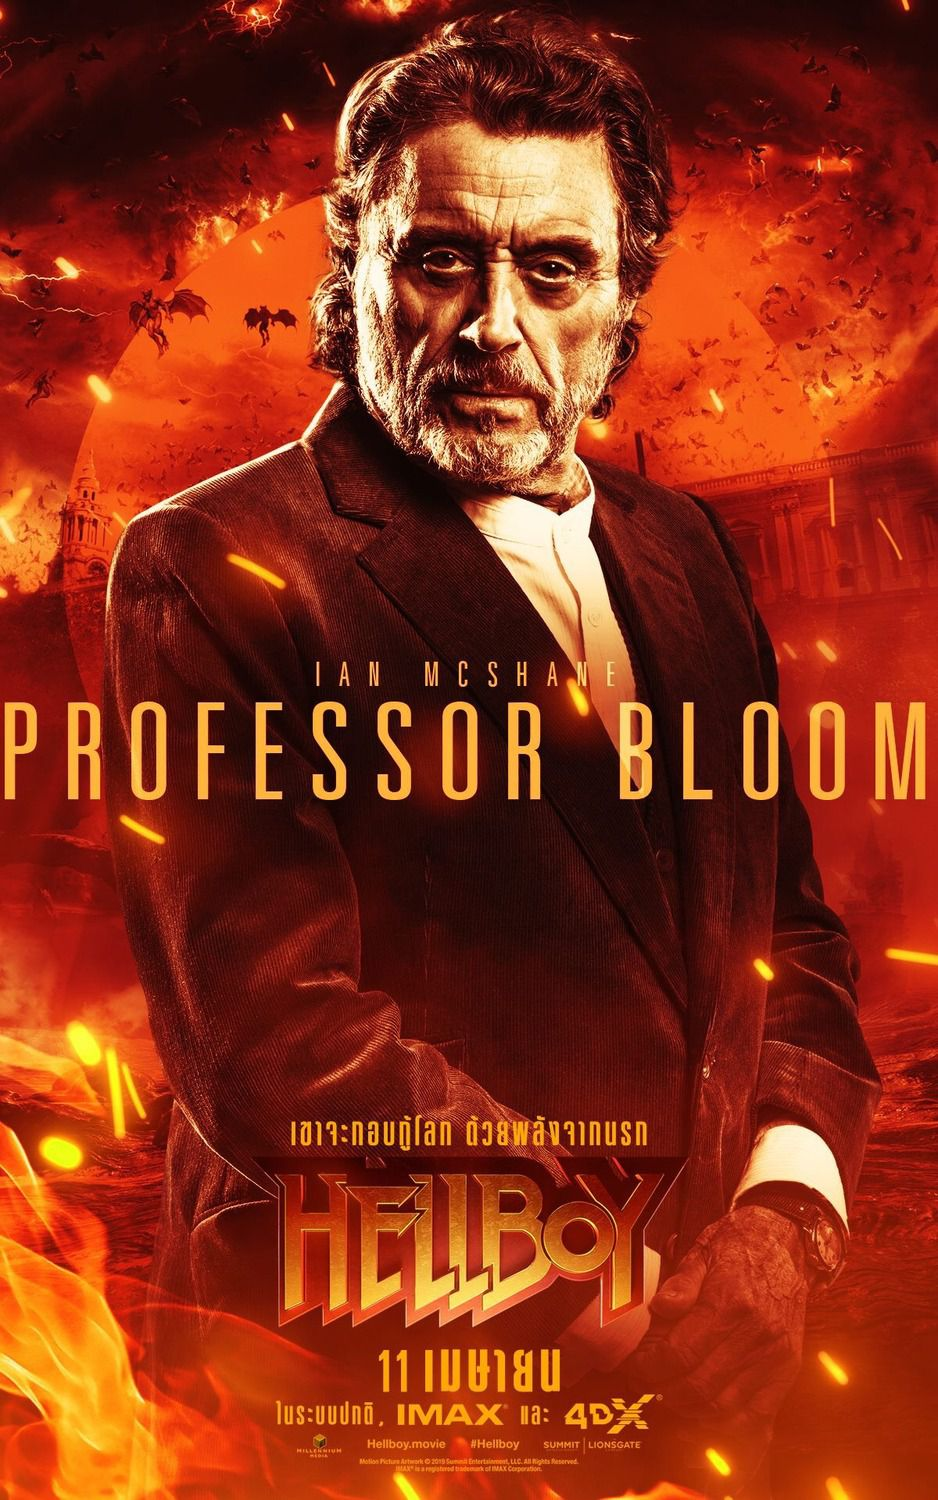 Ian McShane as Professor Bloom